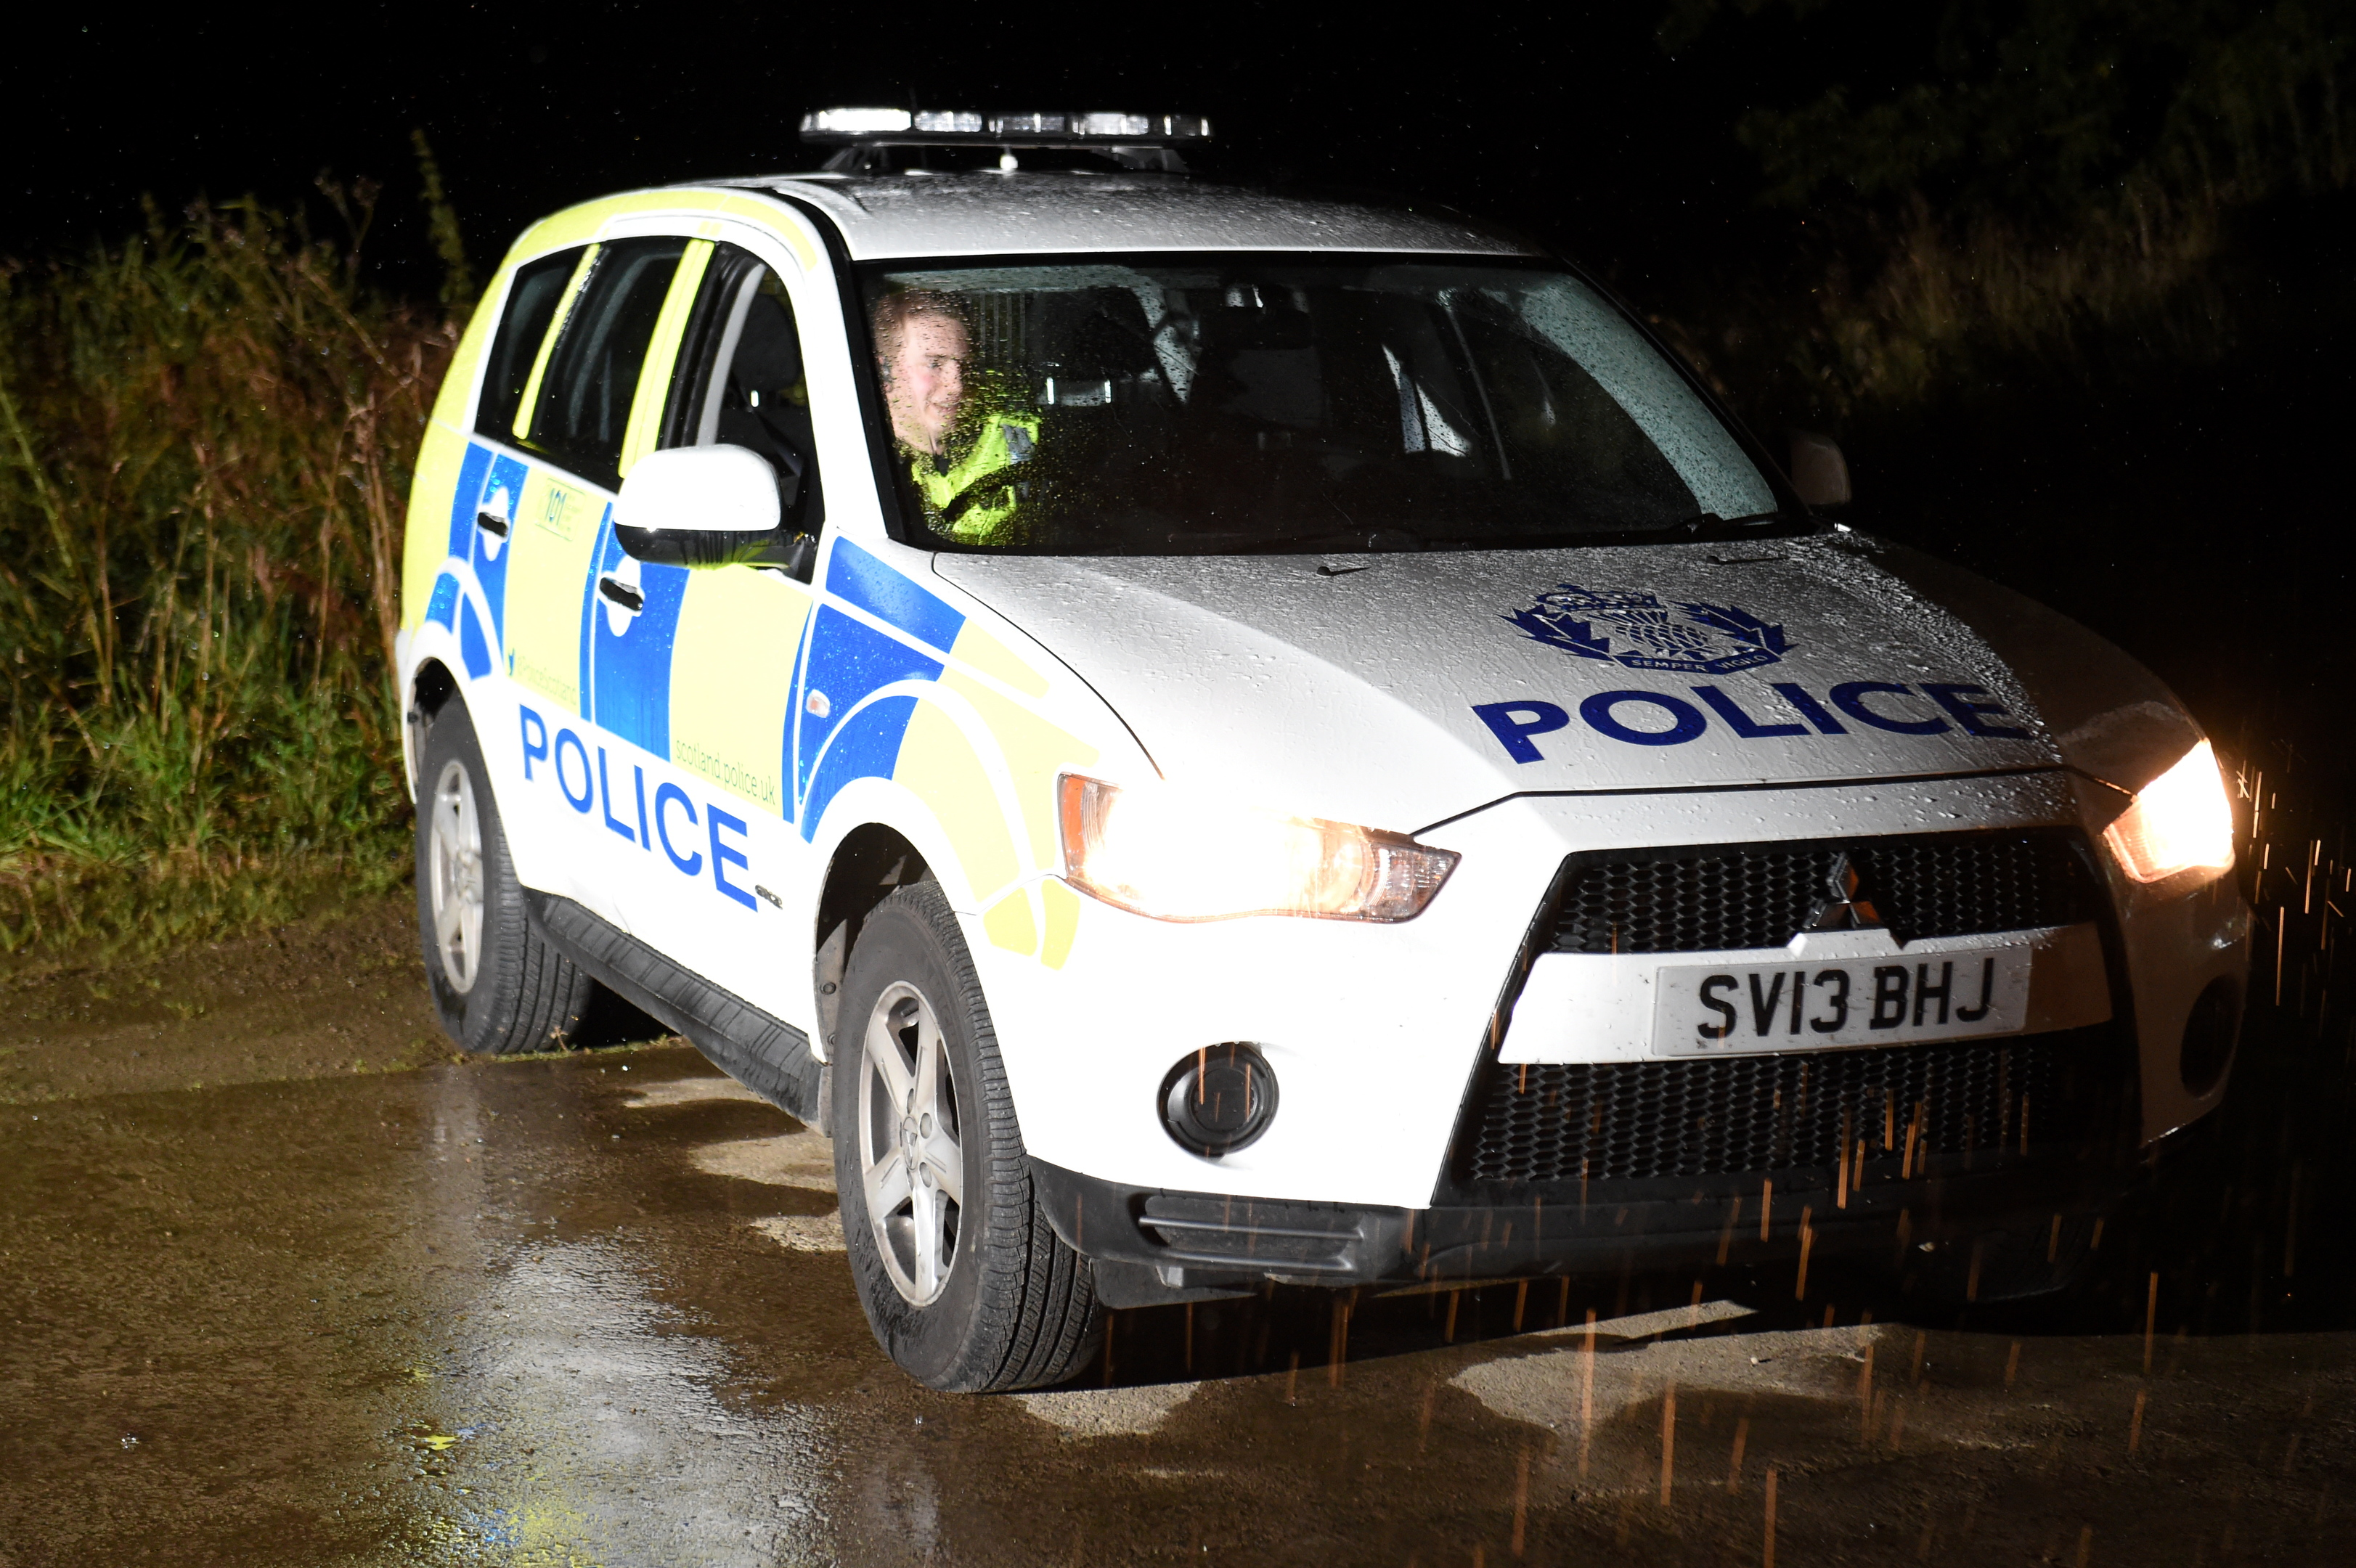 Police Scotland officers at the scene in New Deer.